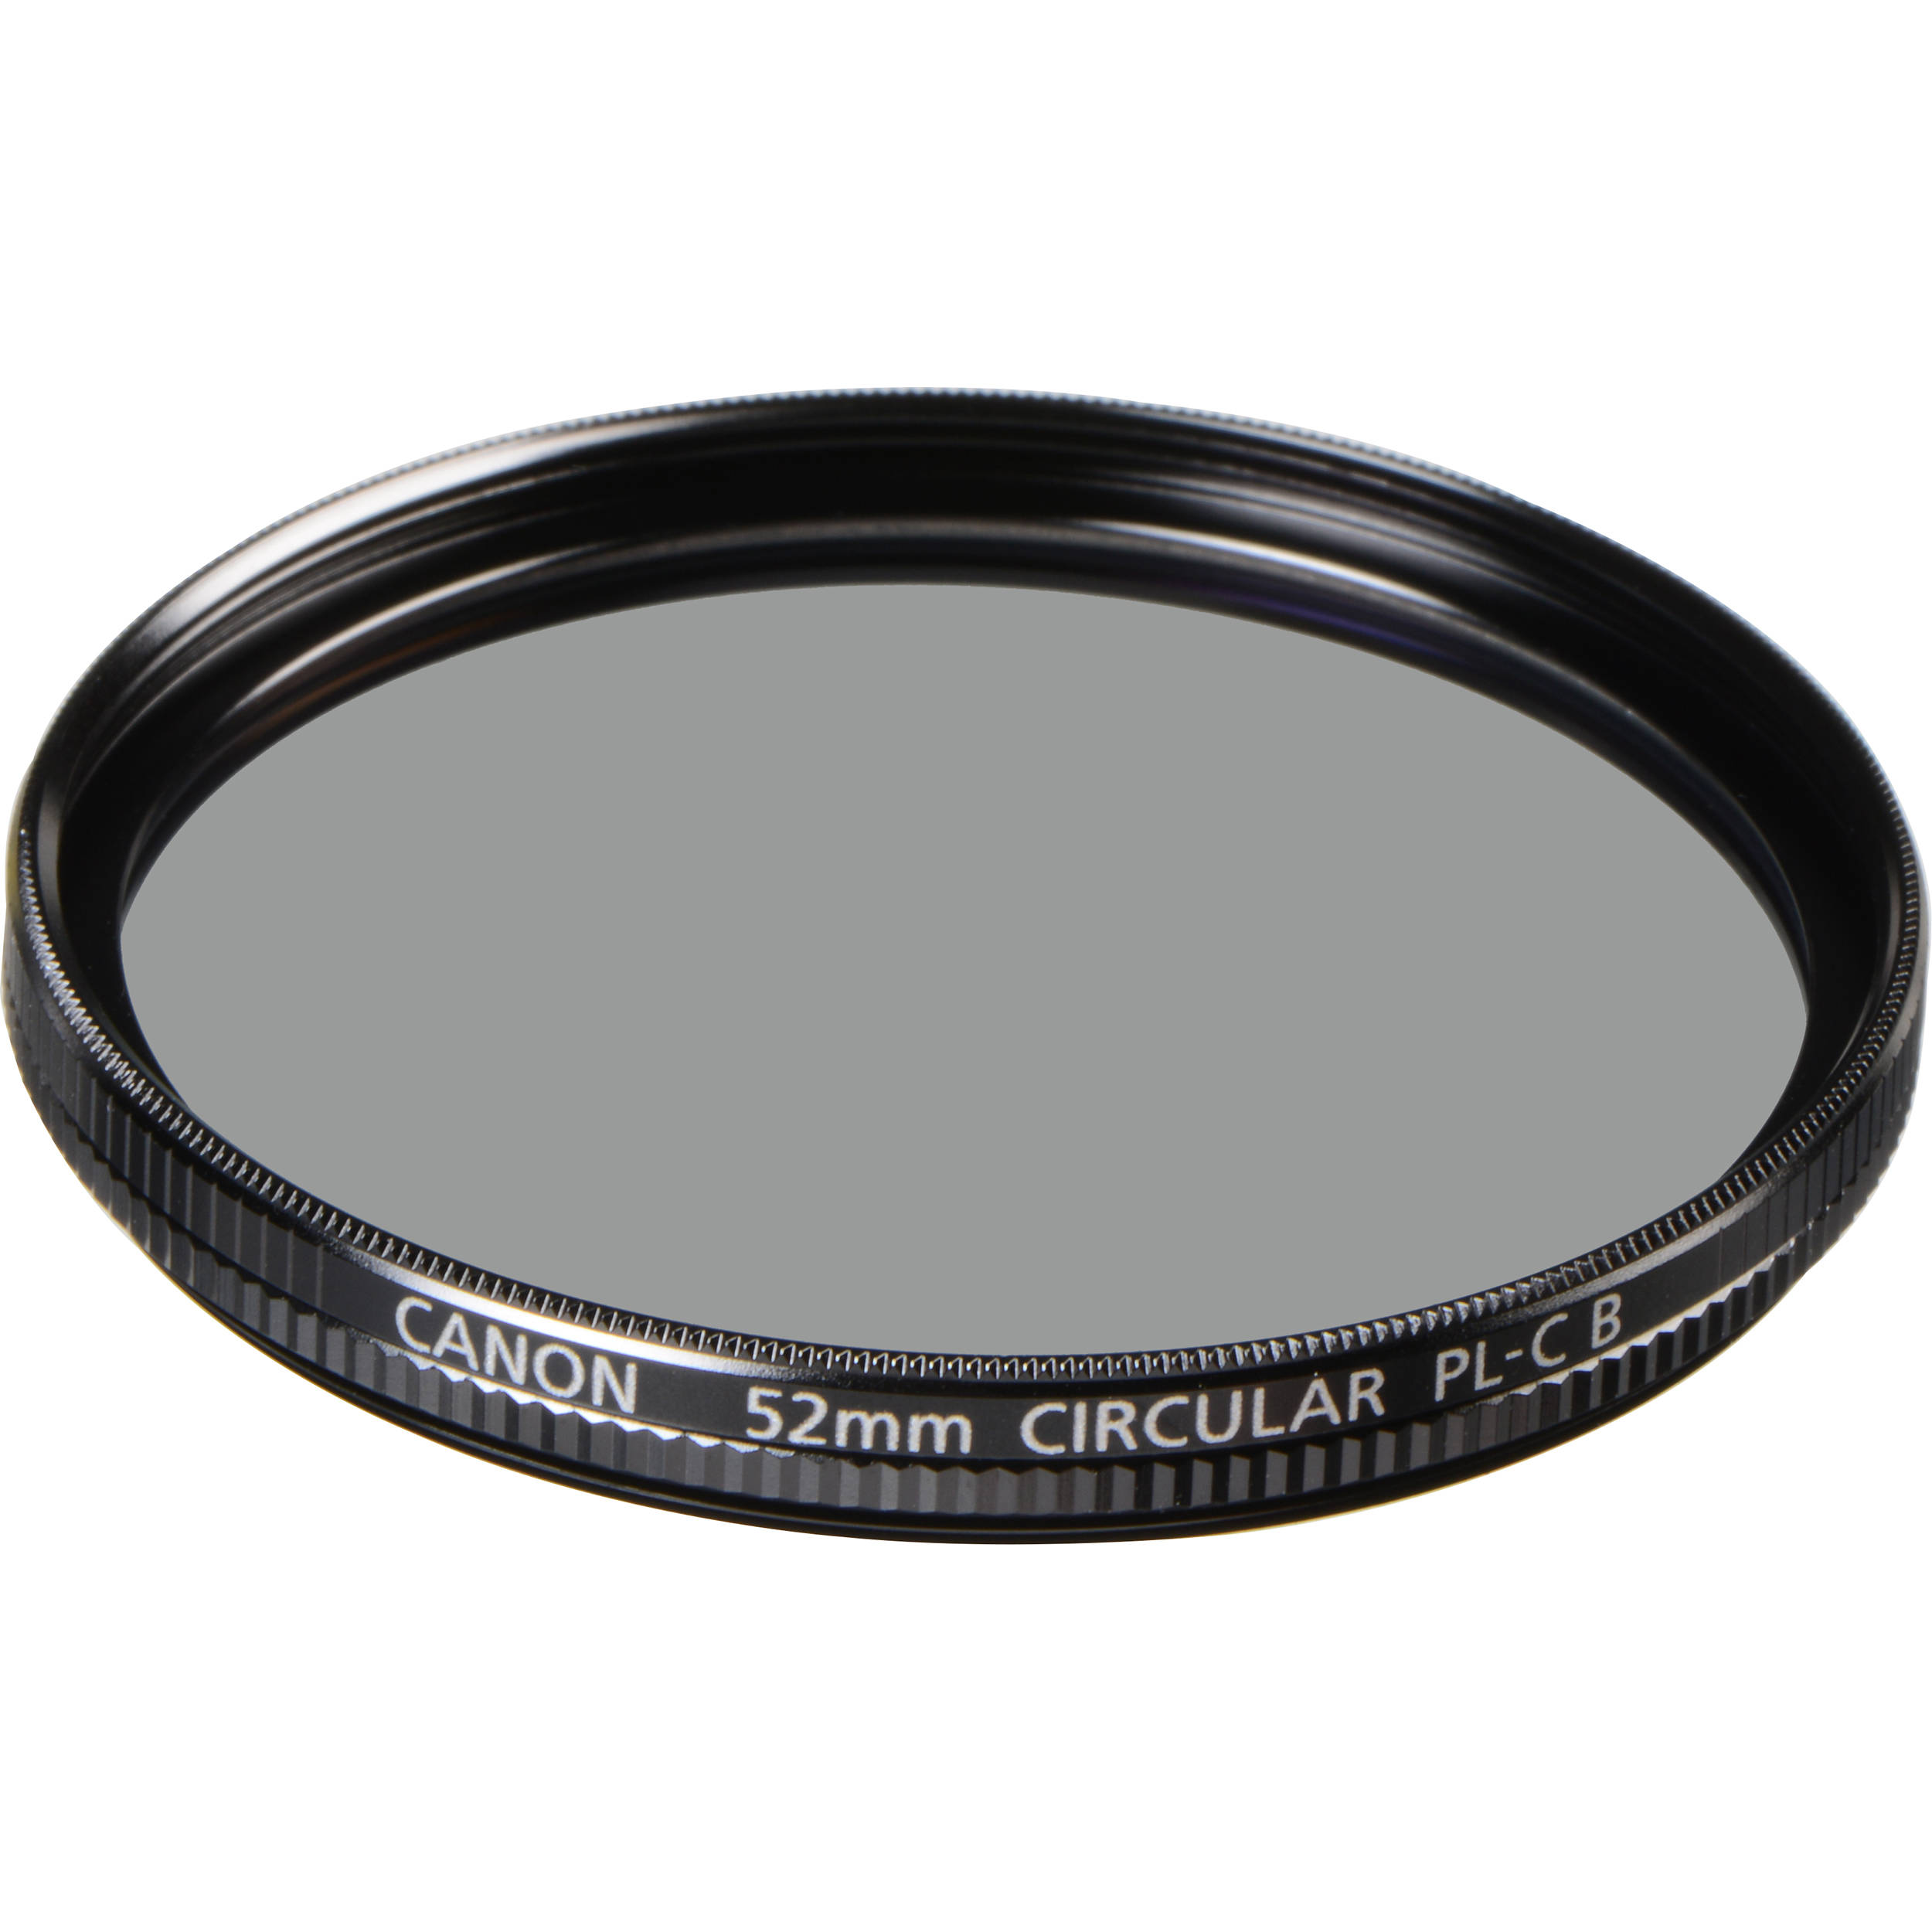 Circular Polarizer Filter Review - The-Digital-Picture.com